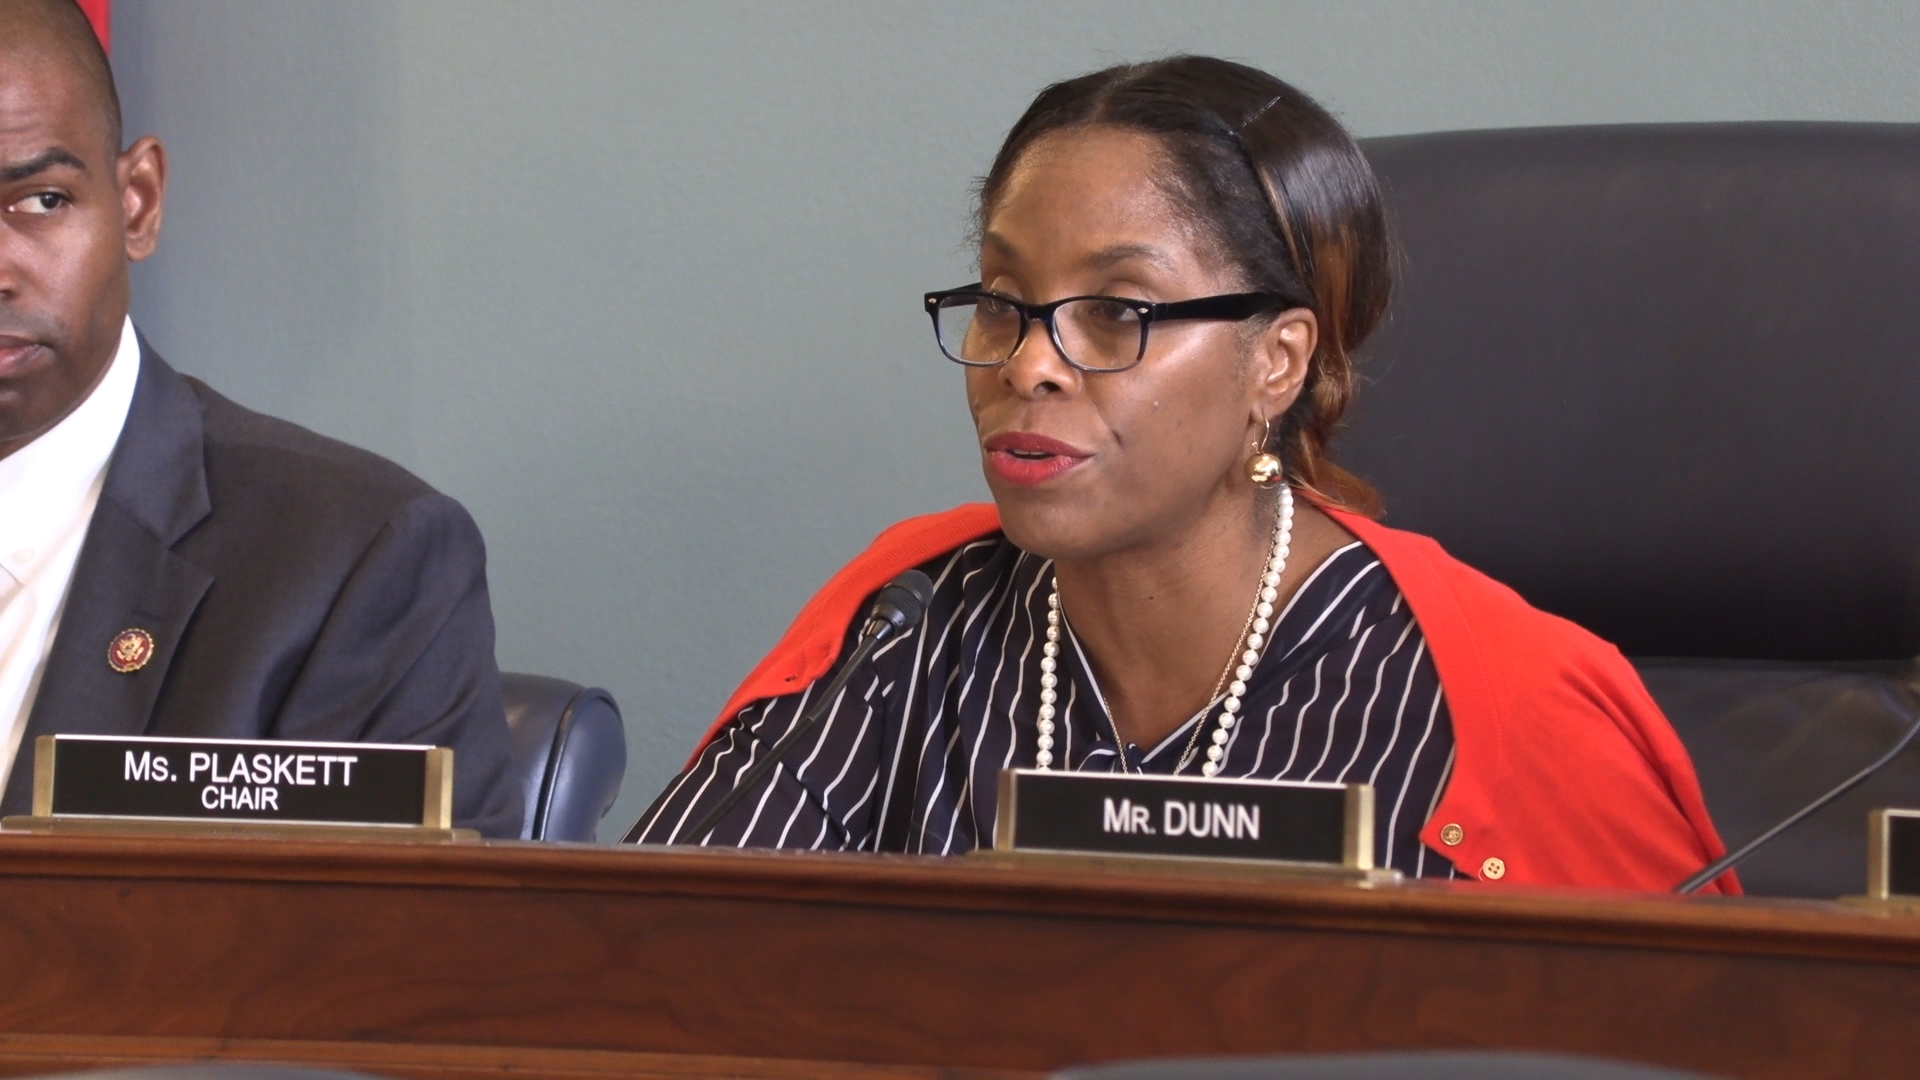 Plaskett chairs first subcommittee hearing